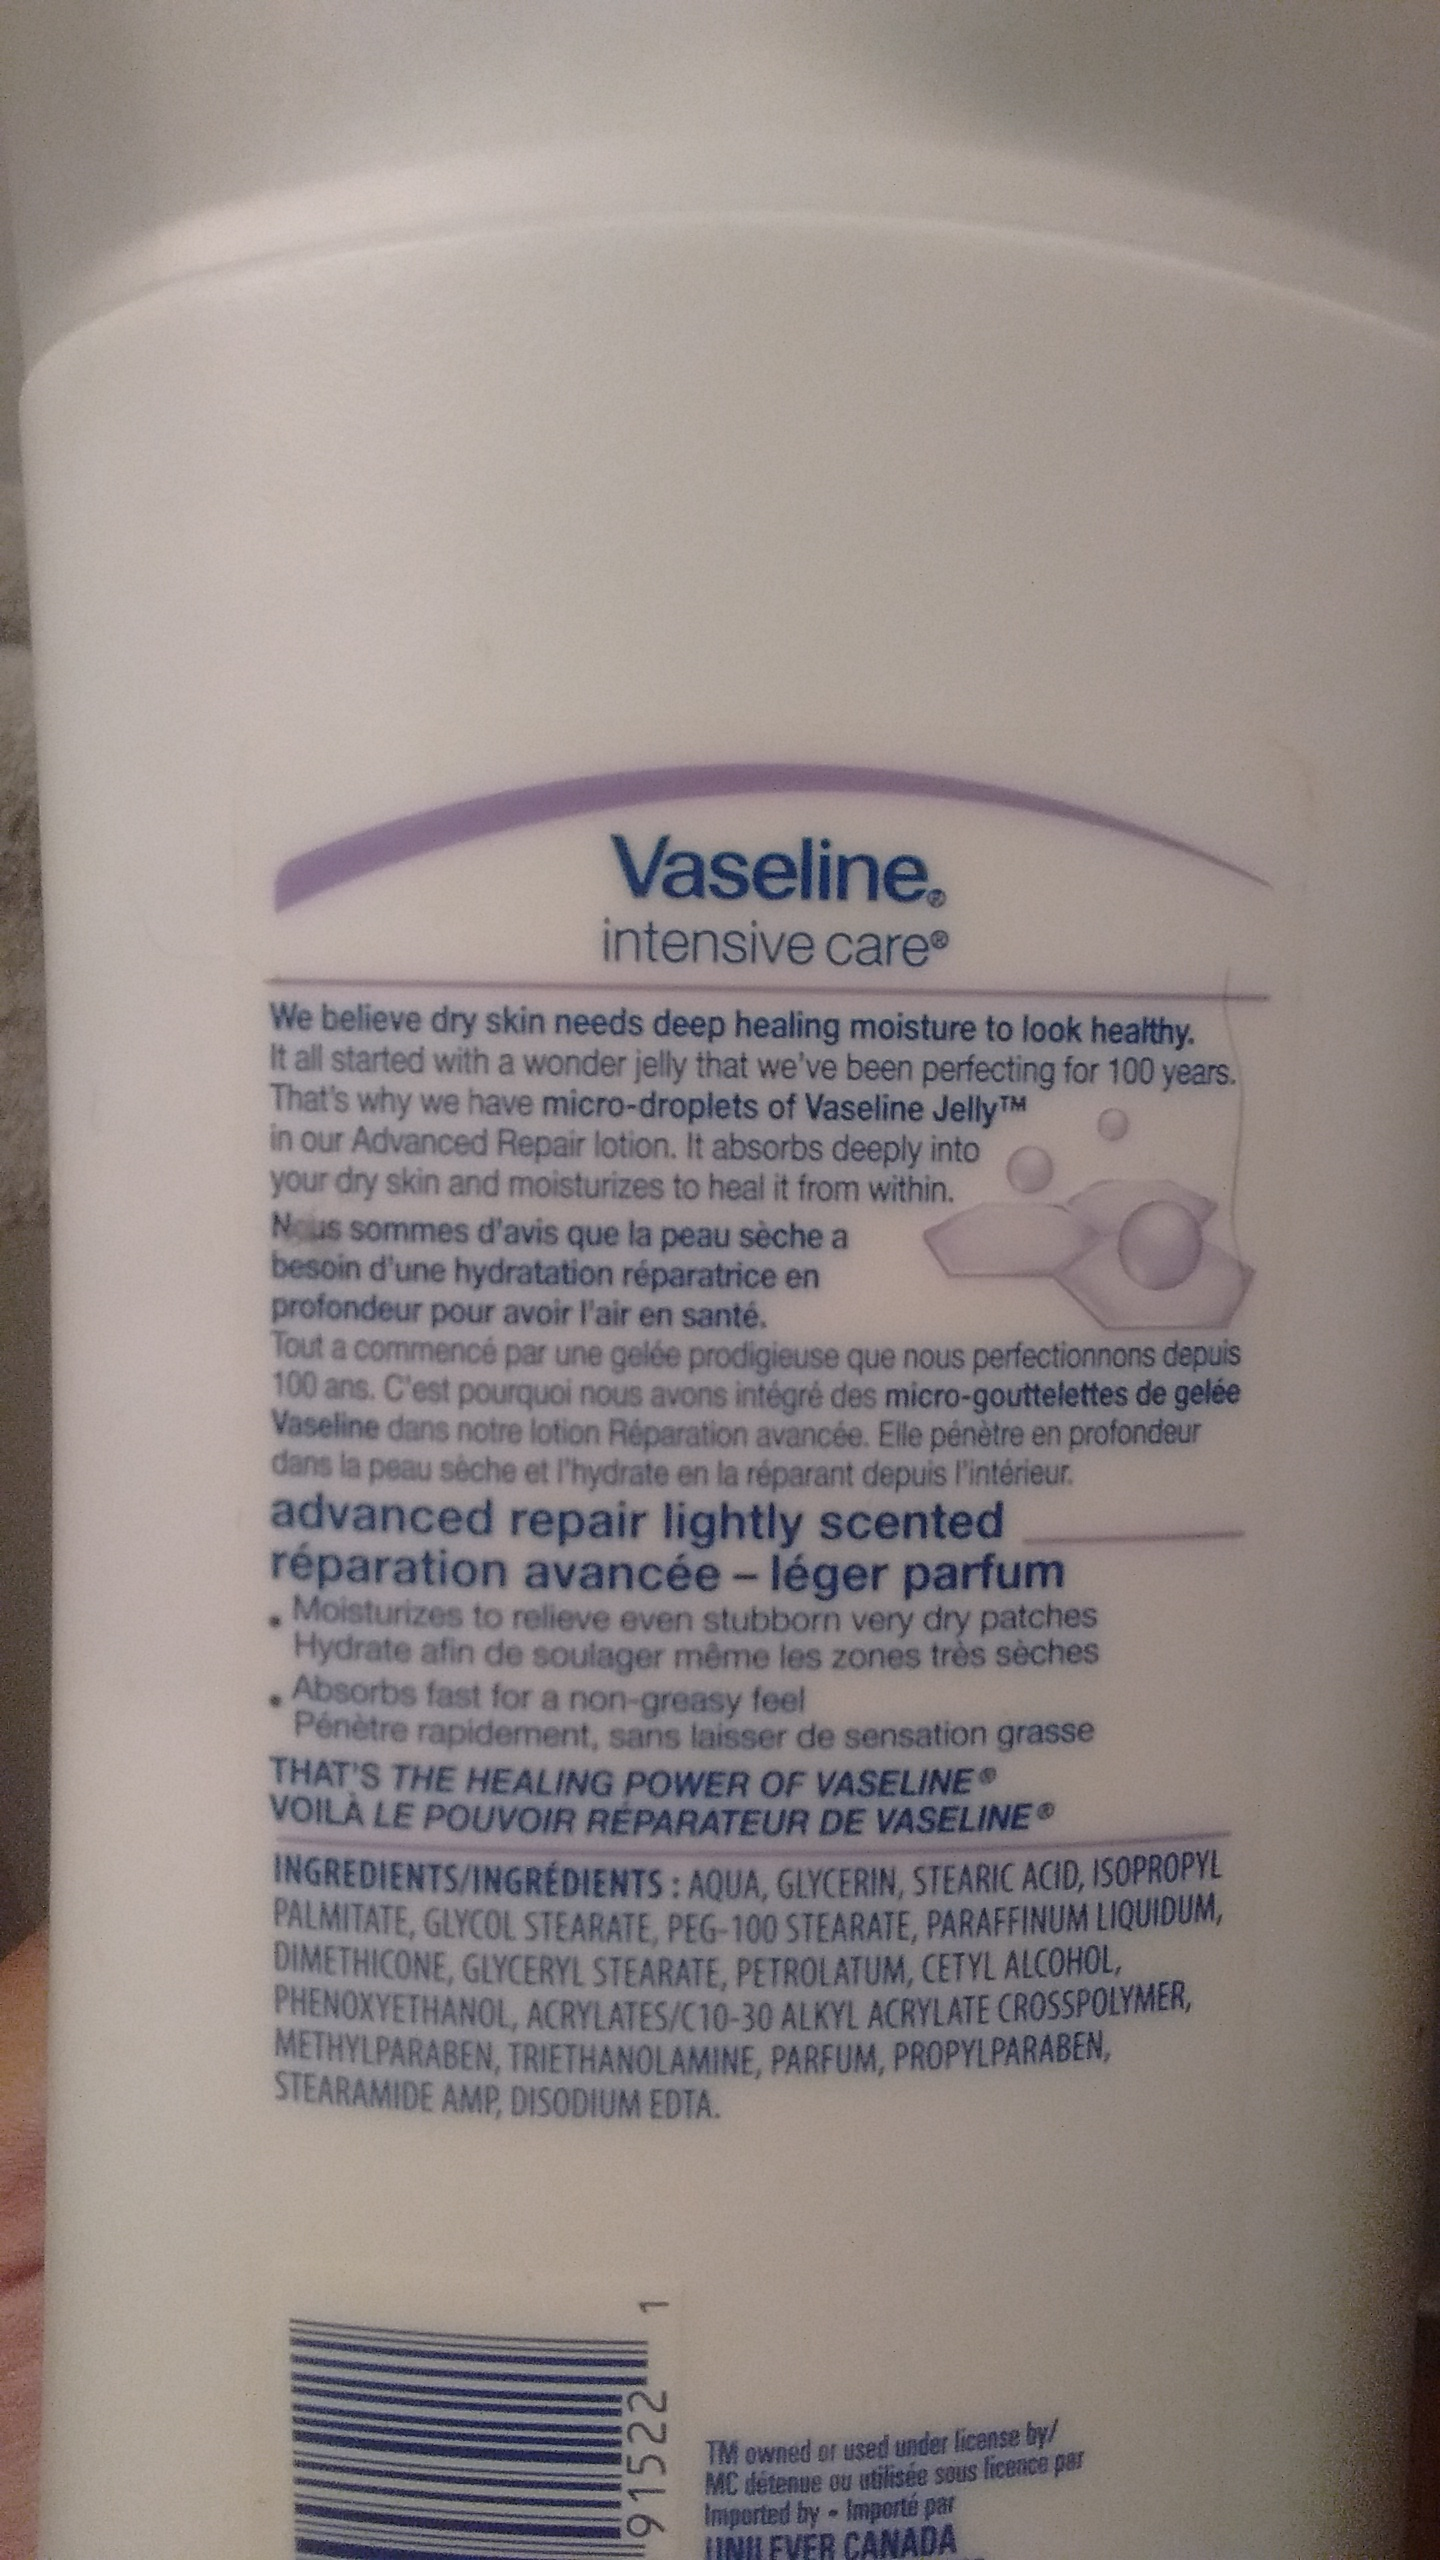 Vaseline Intensive Care Advanced Repair Lightly Scented